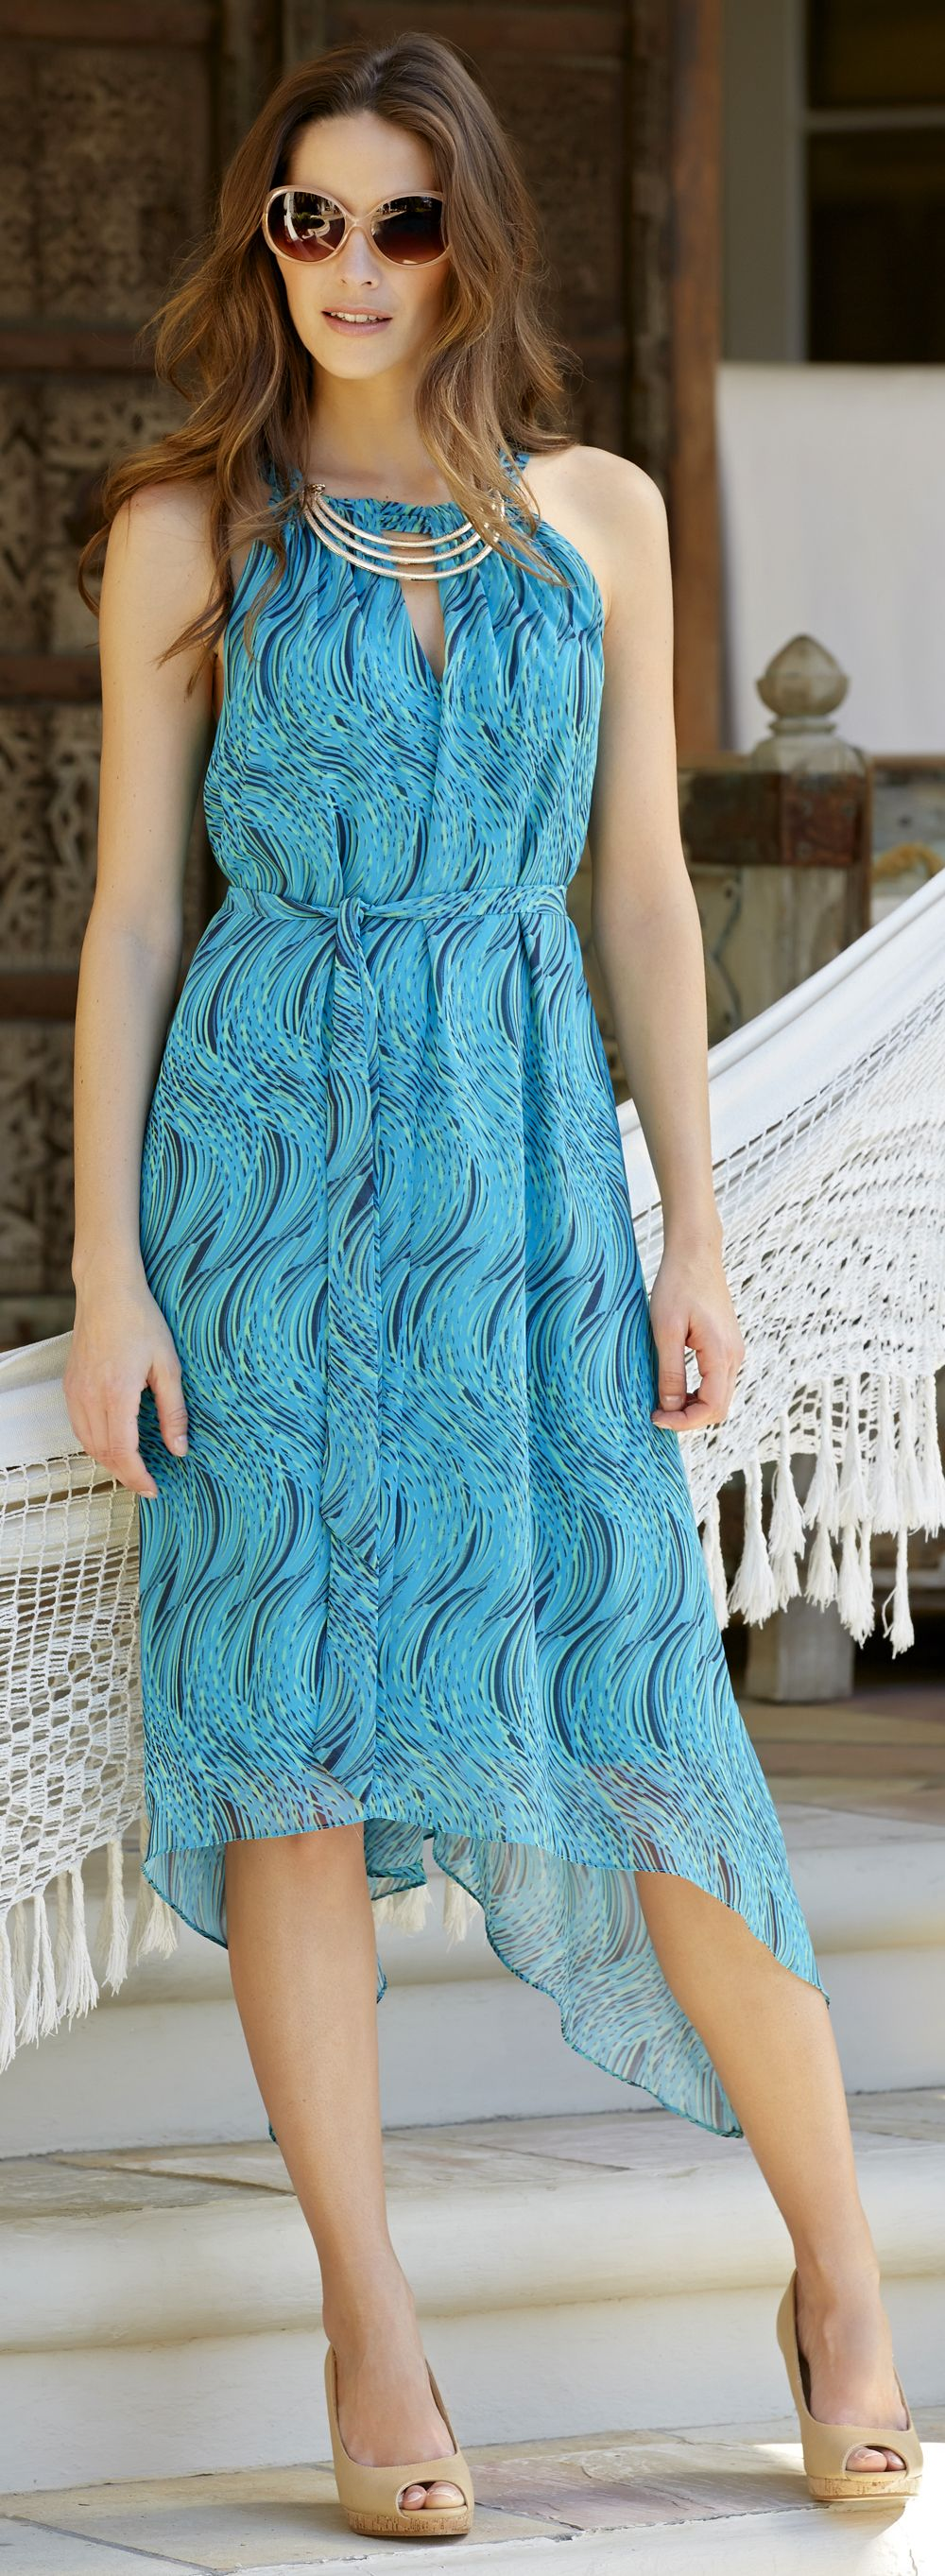 Beach wedding mother of bride dresses  casual tea length mother of the bride dress  click to read about